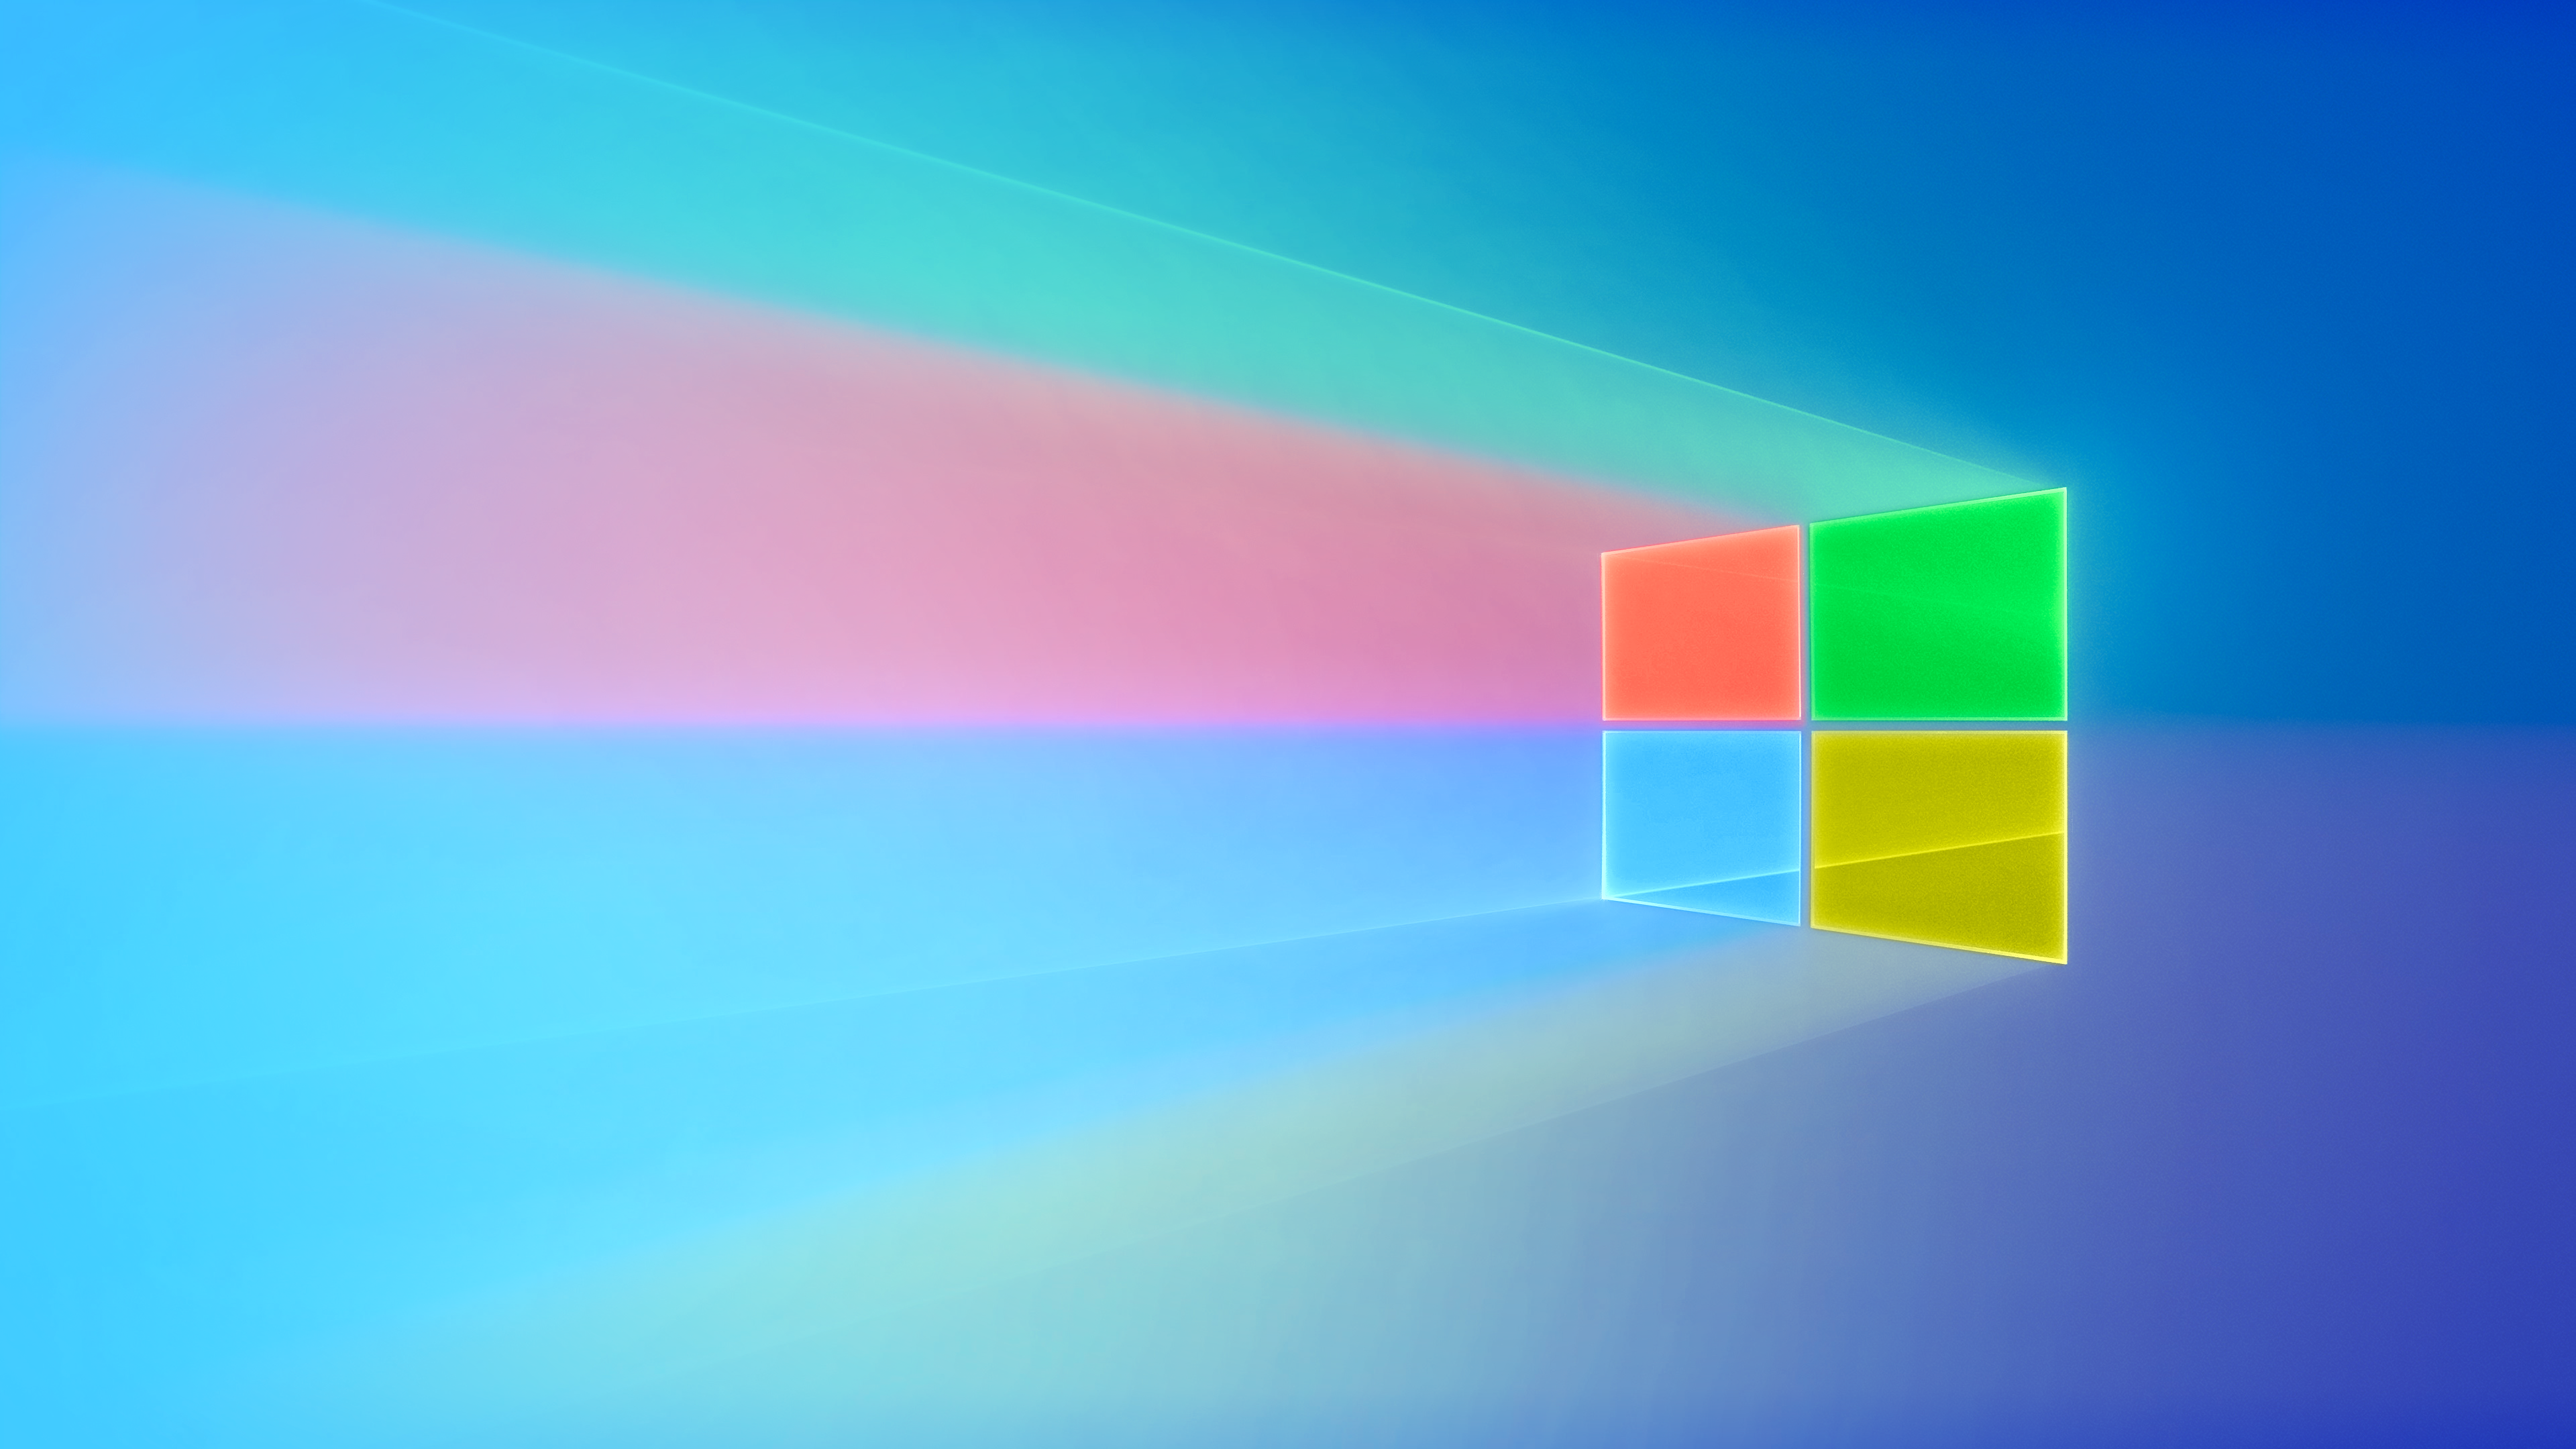 Get Full Hd Sfondo Windows 10 4K Background